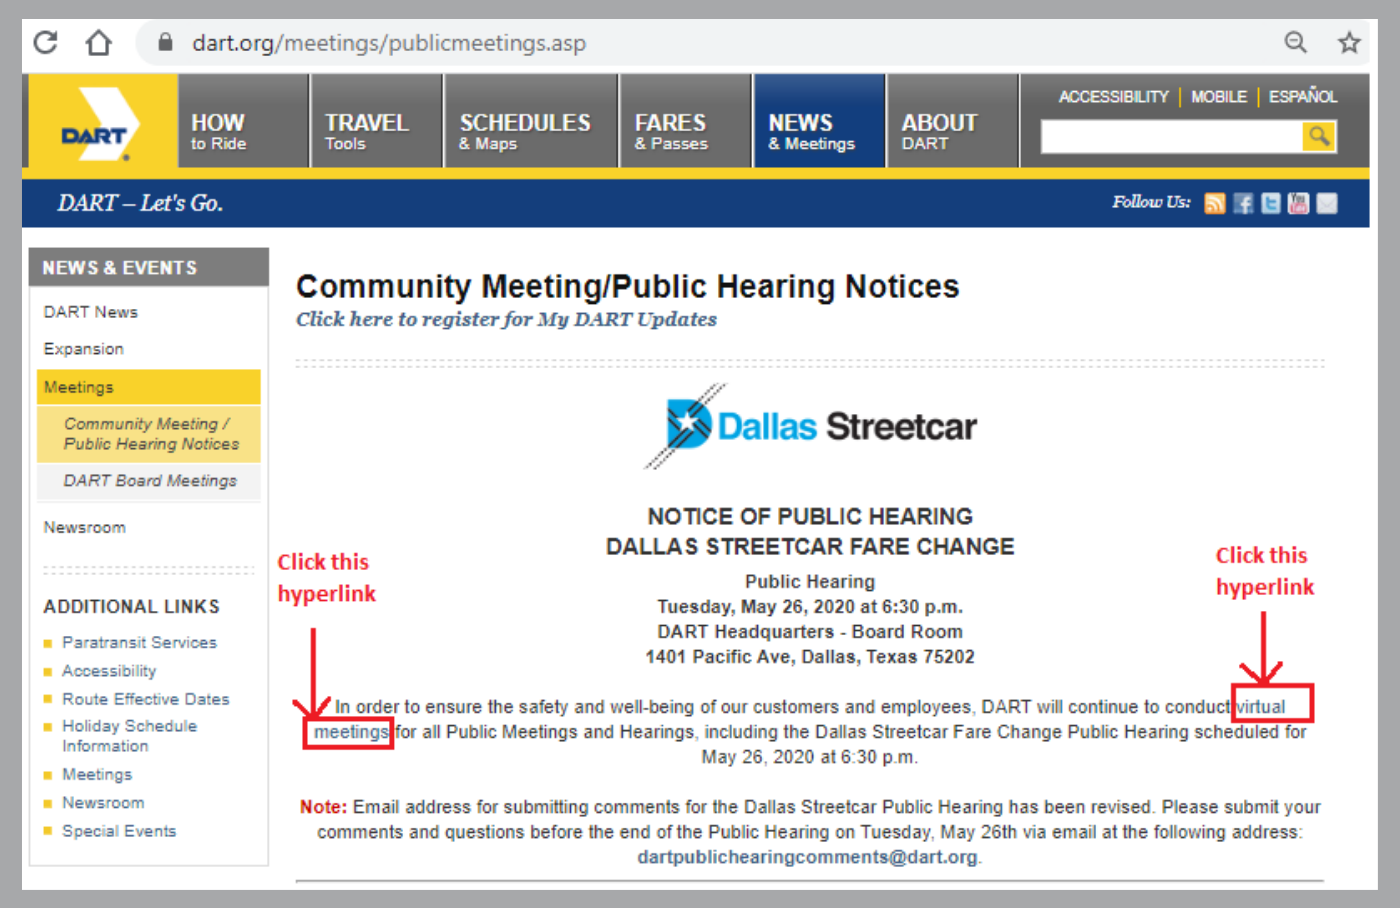 DART Public Meetings Page